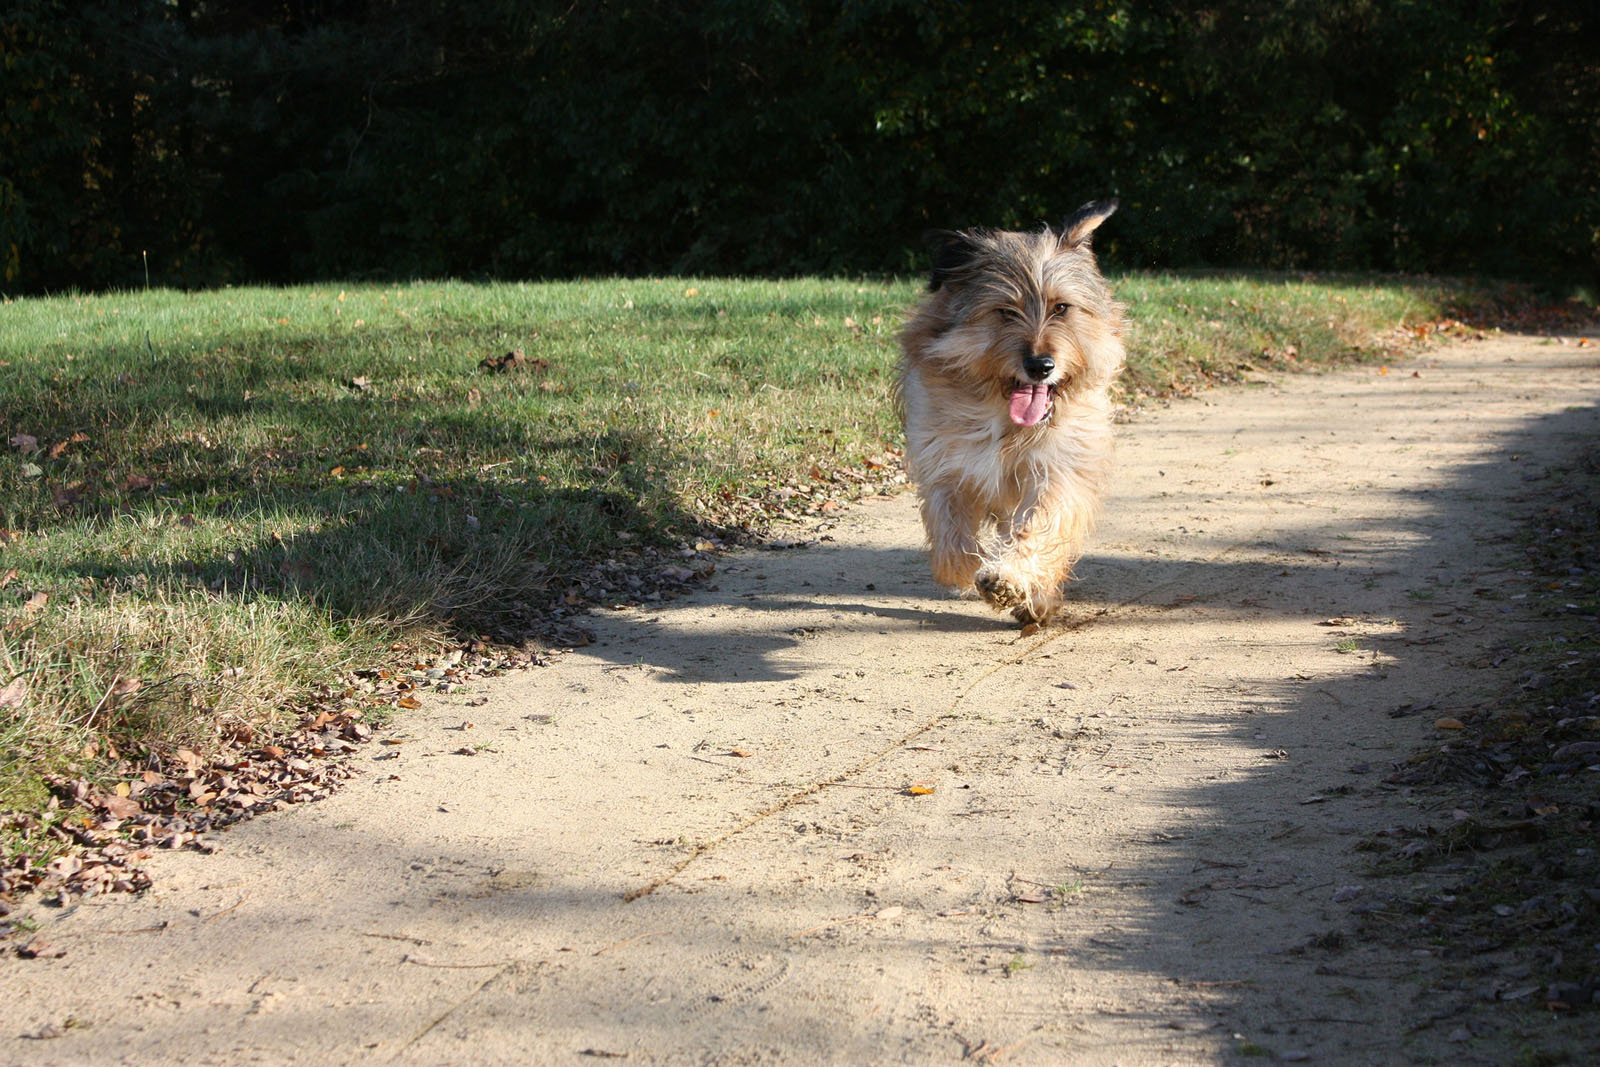 terrier-dog-animal-run-race